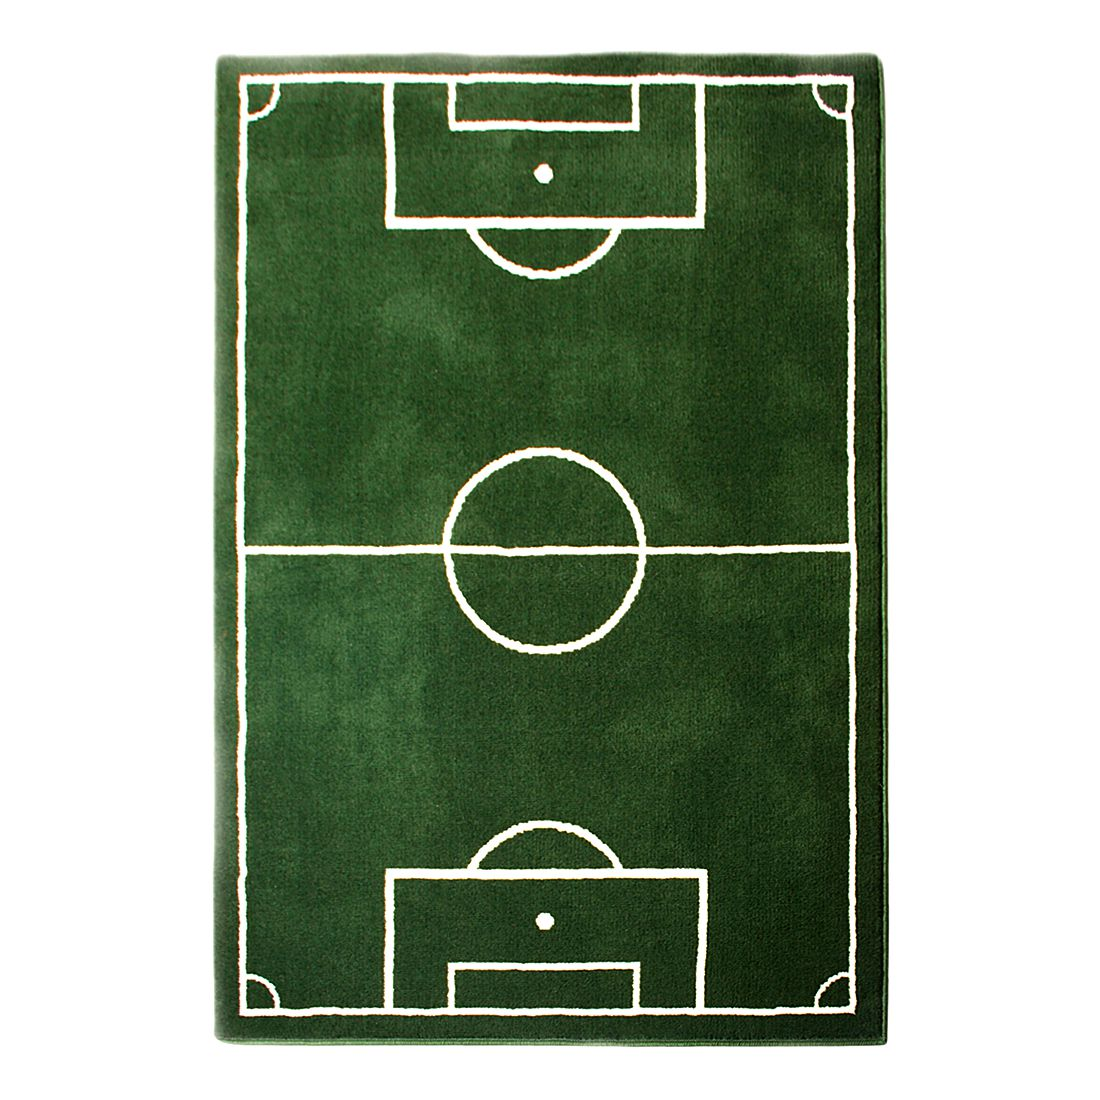 Home 24 - Tapis football - 160 x 230 cm, hanse home collection